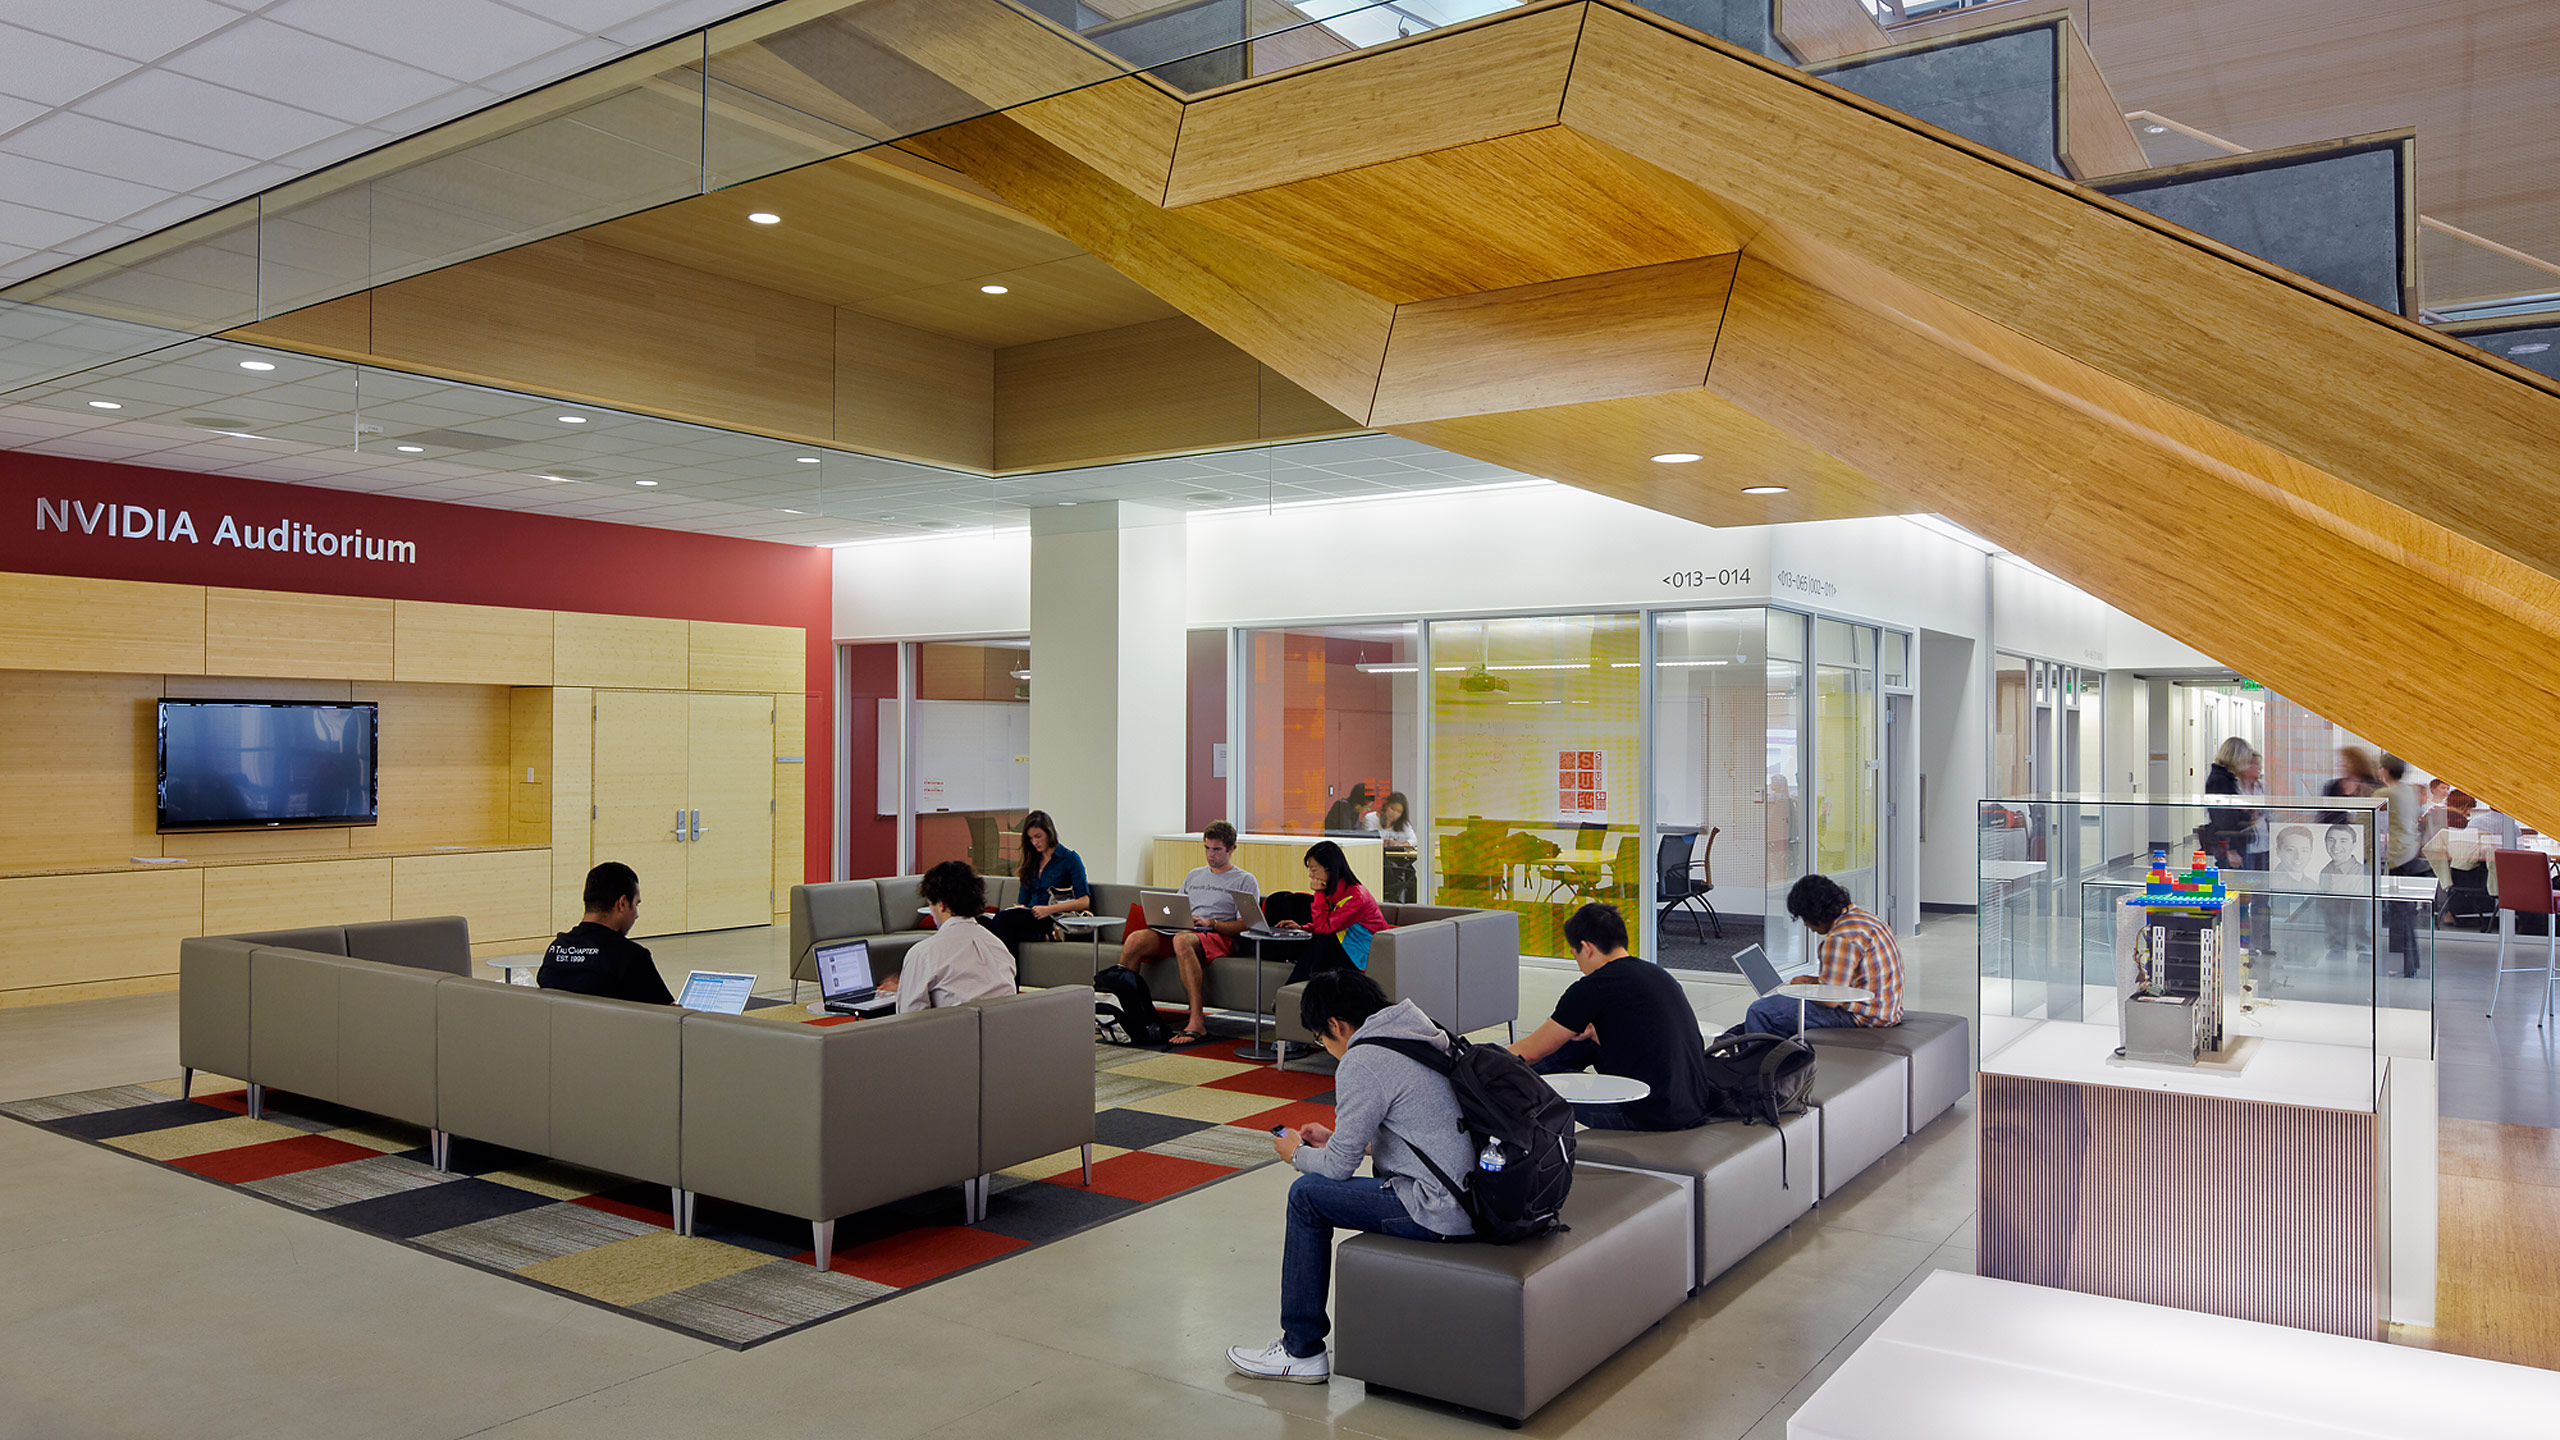 Jen-Hsun Huang Engineering Center – Stanford University / image 7